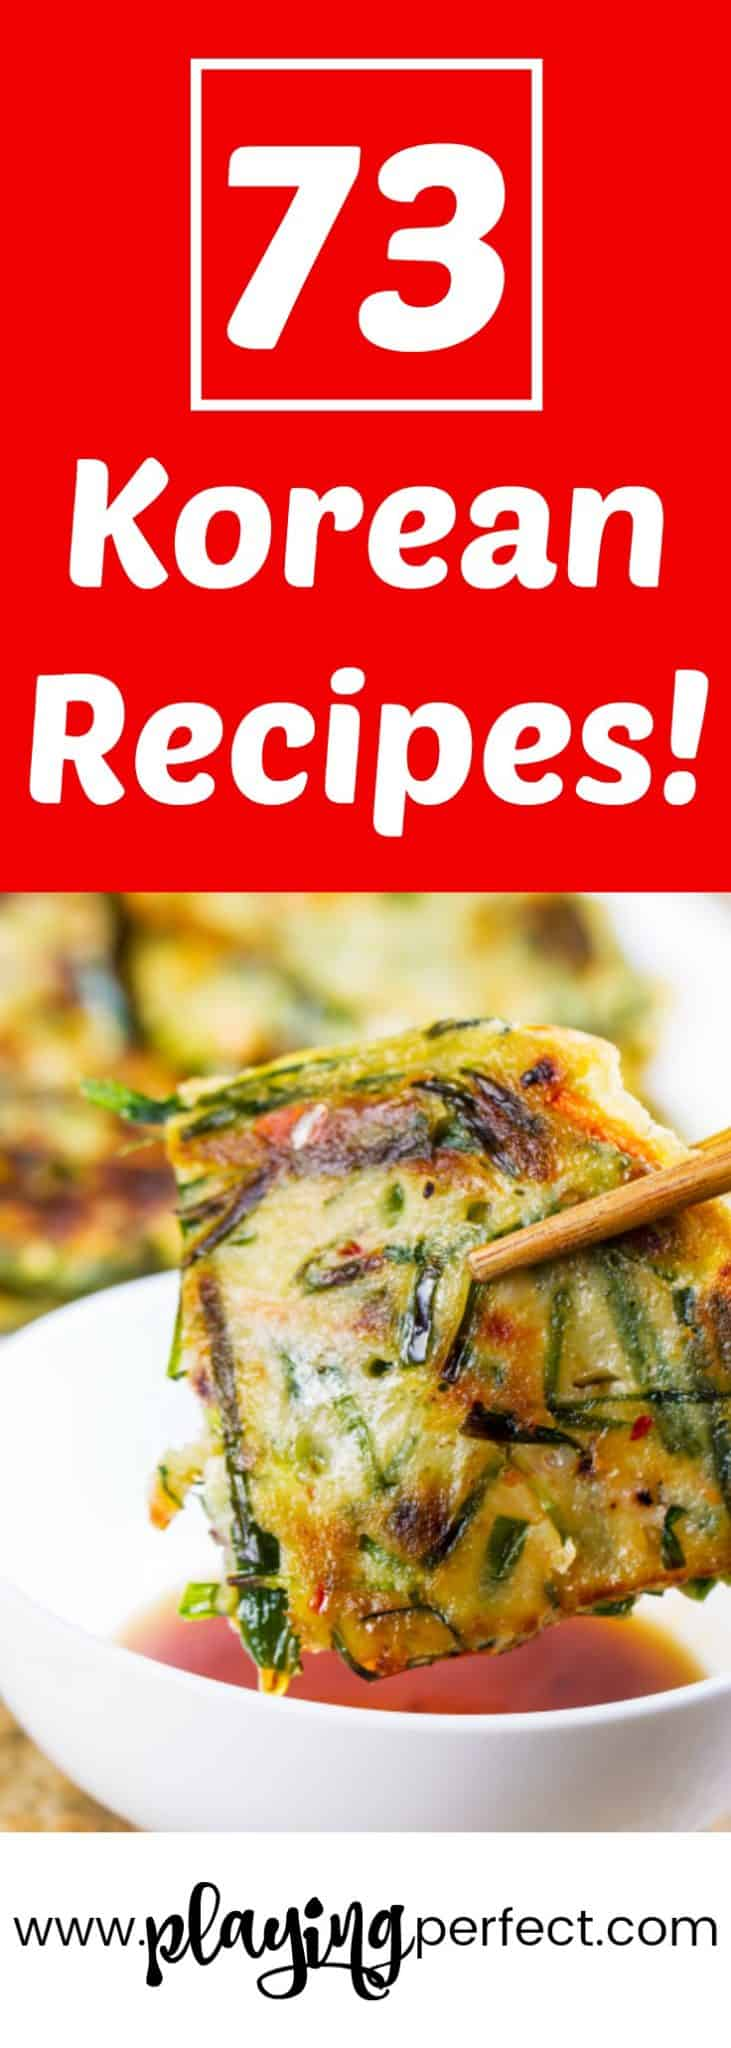 73 korean recipes that will make you excited to get in the kitchen 73 korean recipes tons of korean food ideas here for the entire family and for forumfinder Images